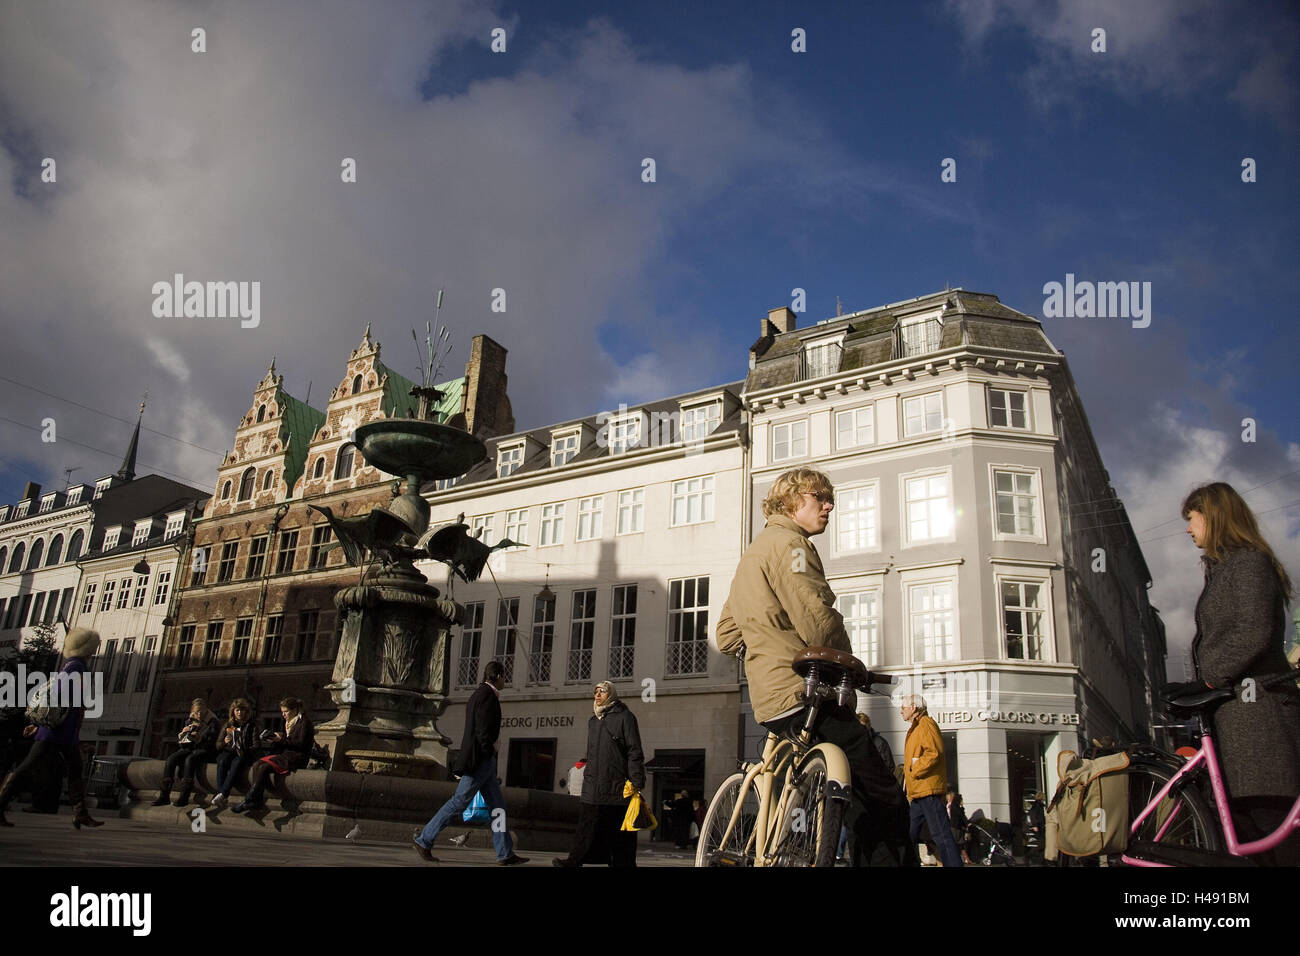 Denmark, Copenhagen, Amagertorv, space, fountain, tourist, capital, Storget, terrace, house facades, architecture, - Stock Image